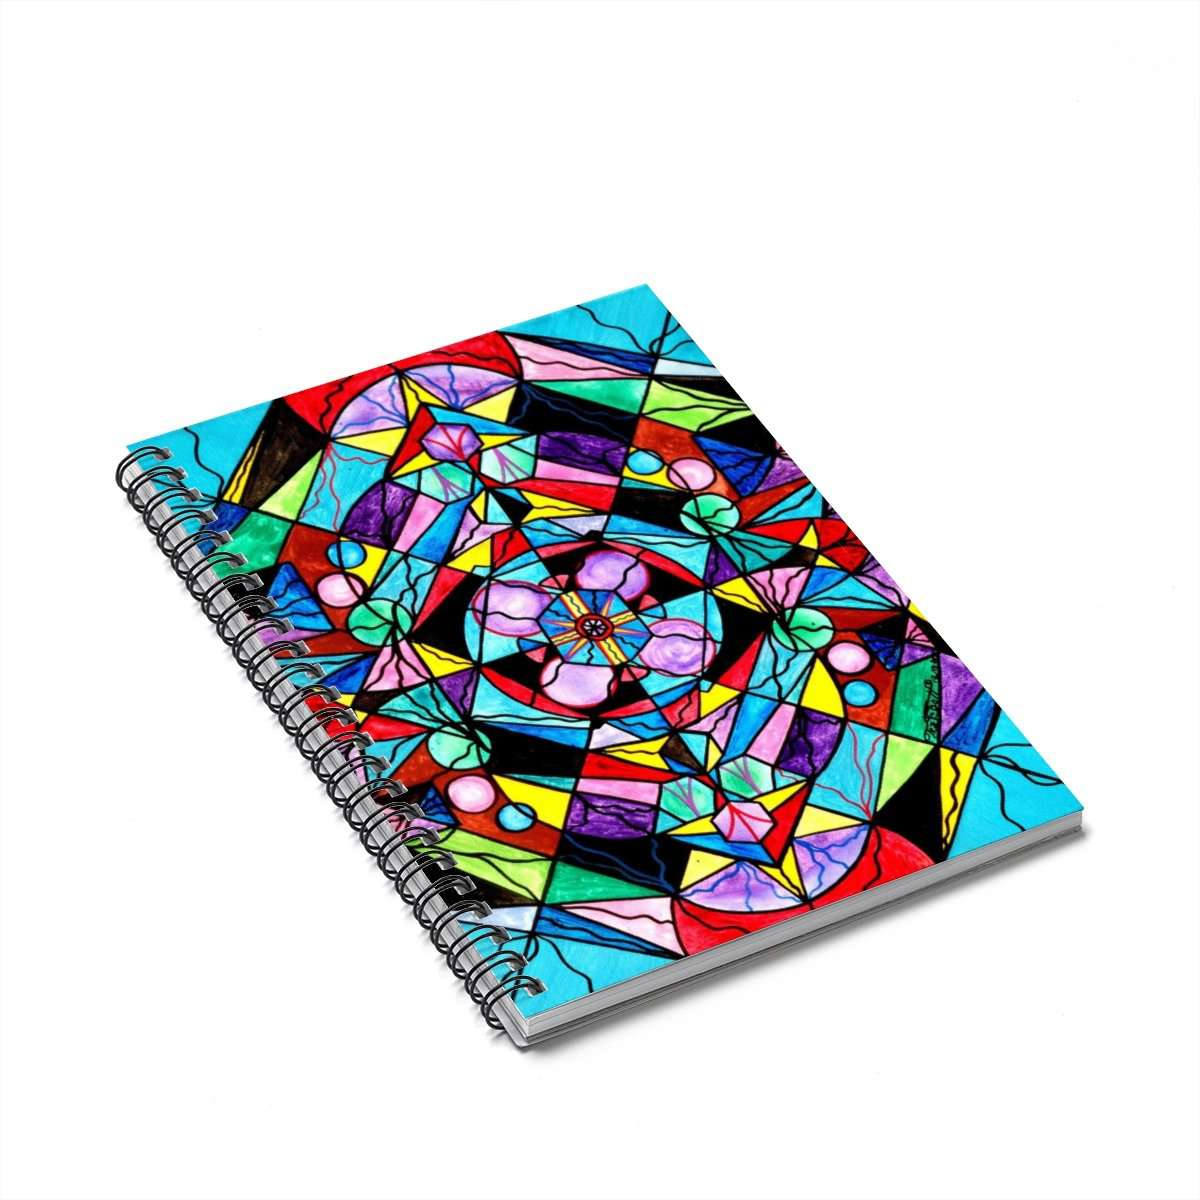 Sacred Geometry Grid - Spiral Notebook